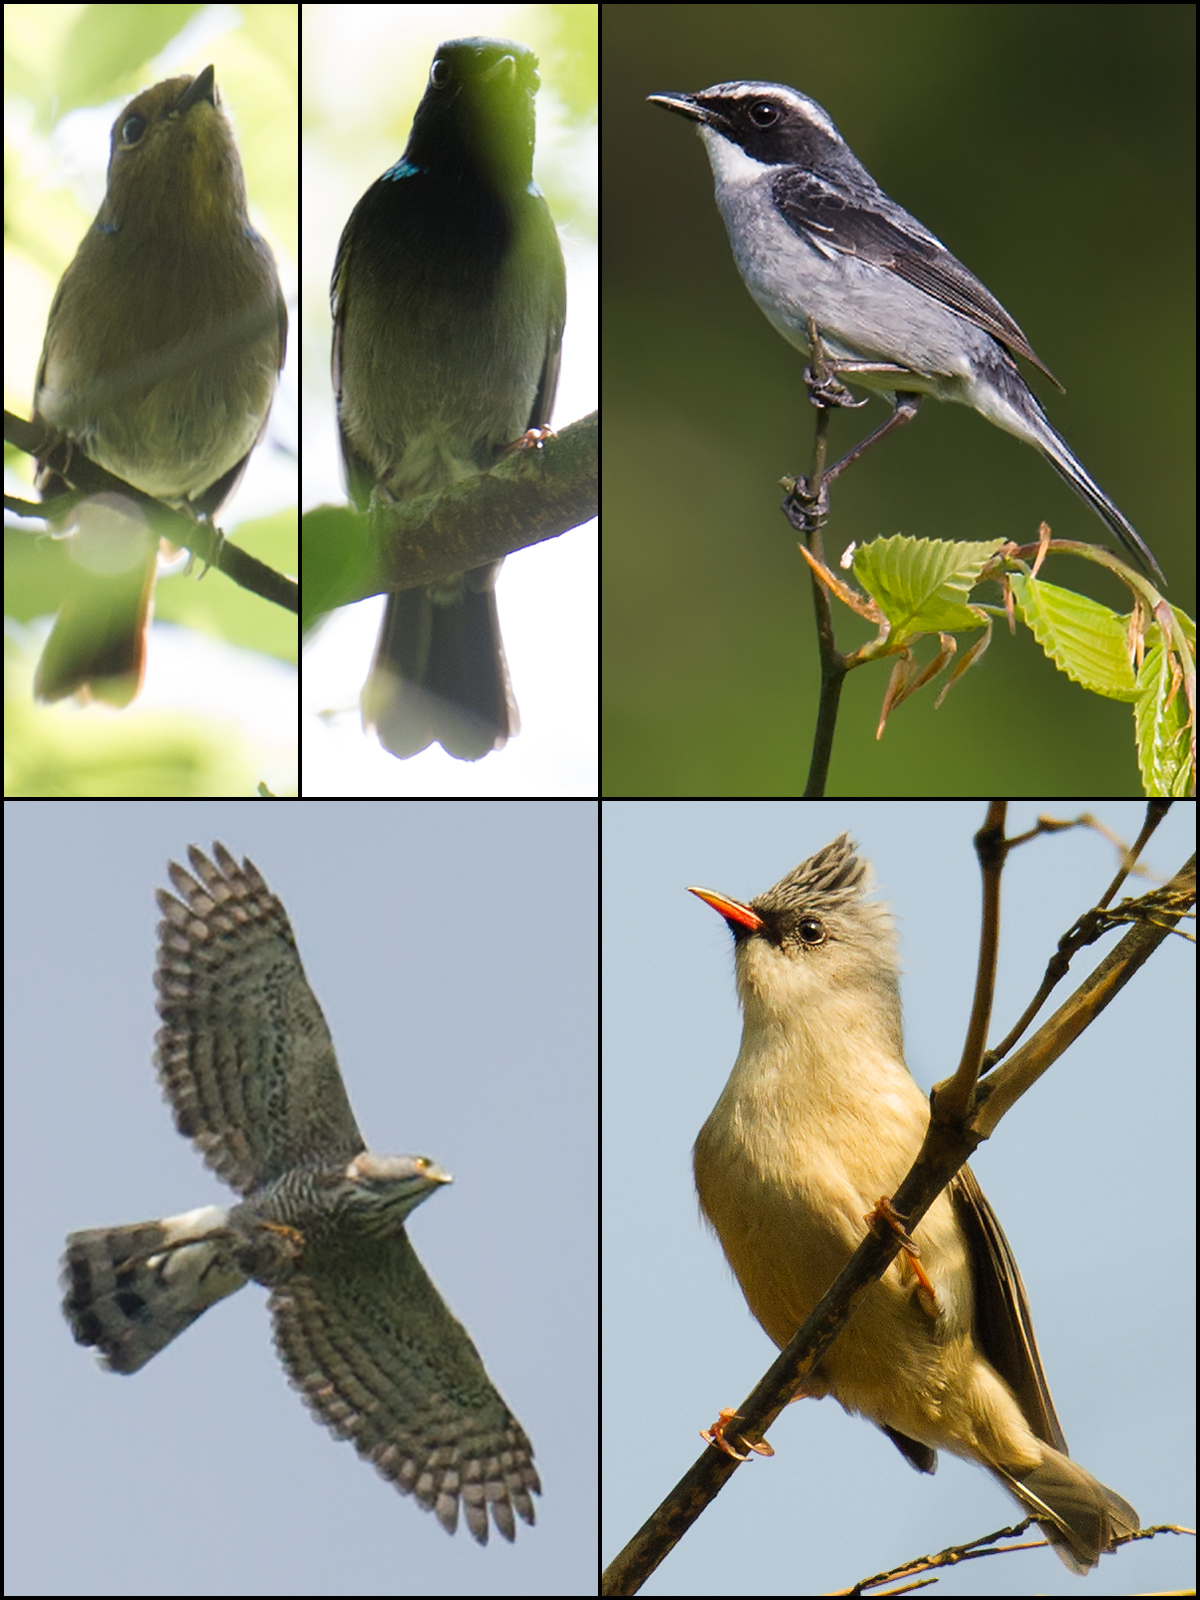 Birds of Emeifeng, 30 April 2015: Clockwise from top L: Small Niltava, female (L) and male; Grey Bush Chat; Black-chinned Yuhina; and Crested Goshawk. Craig Brelsford.